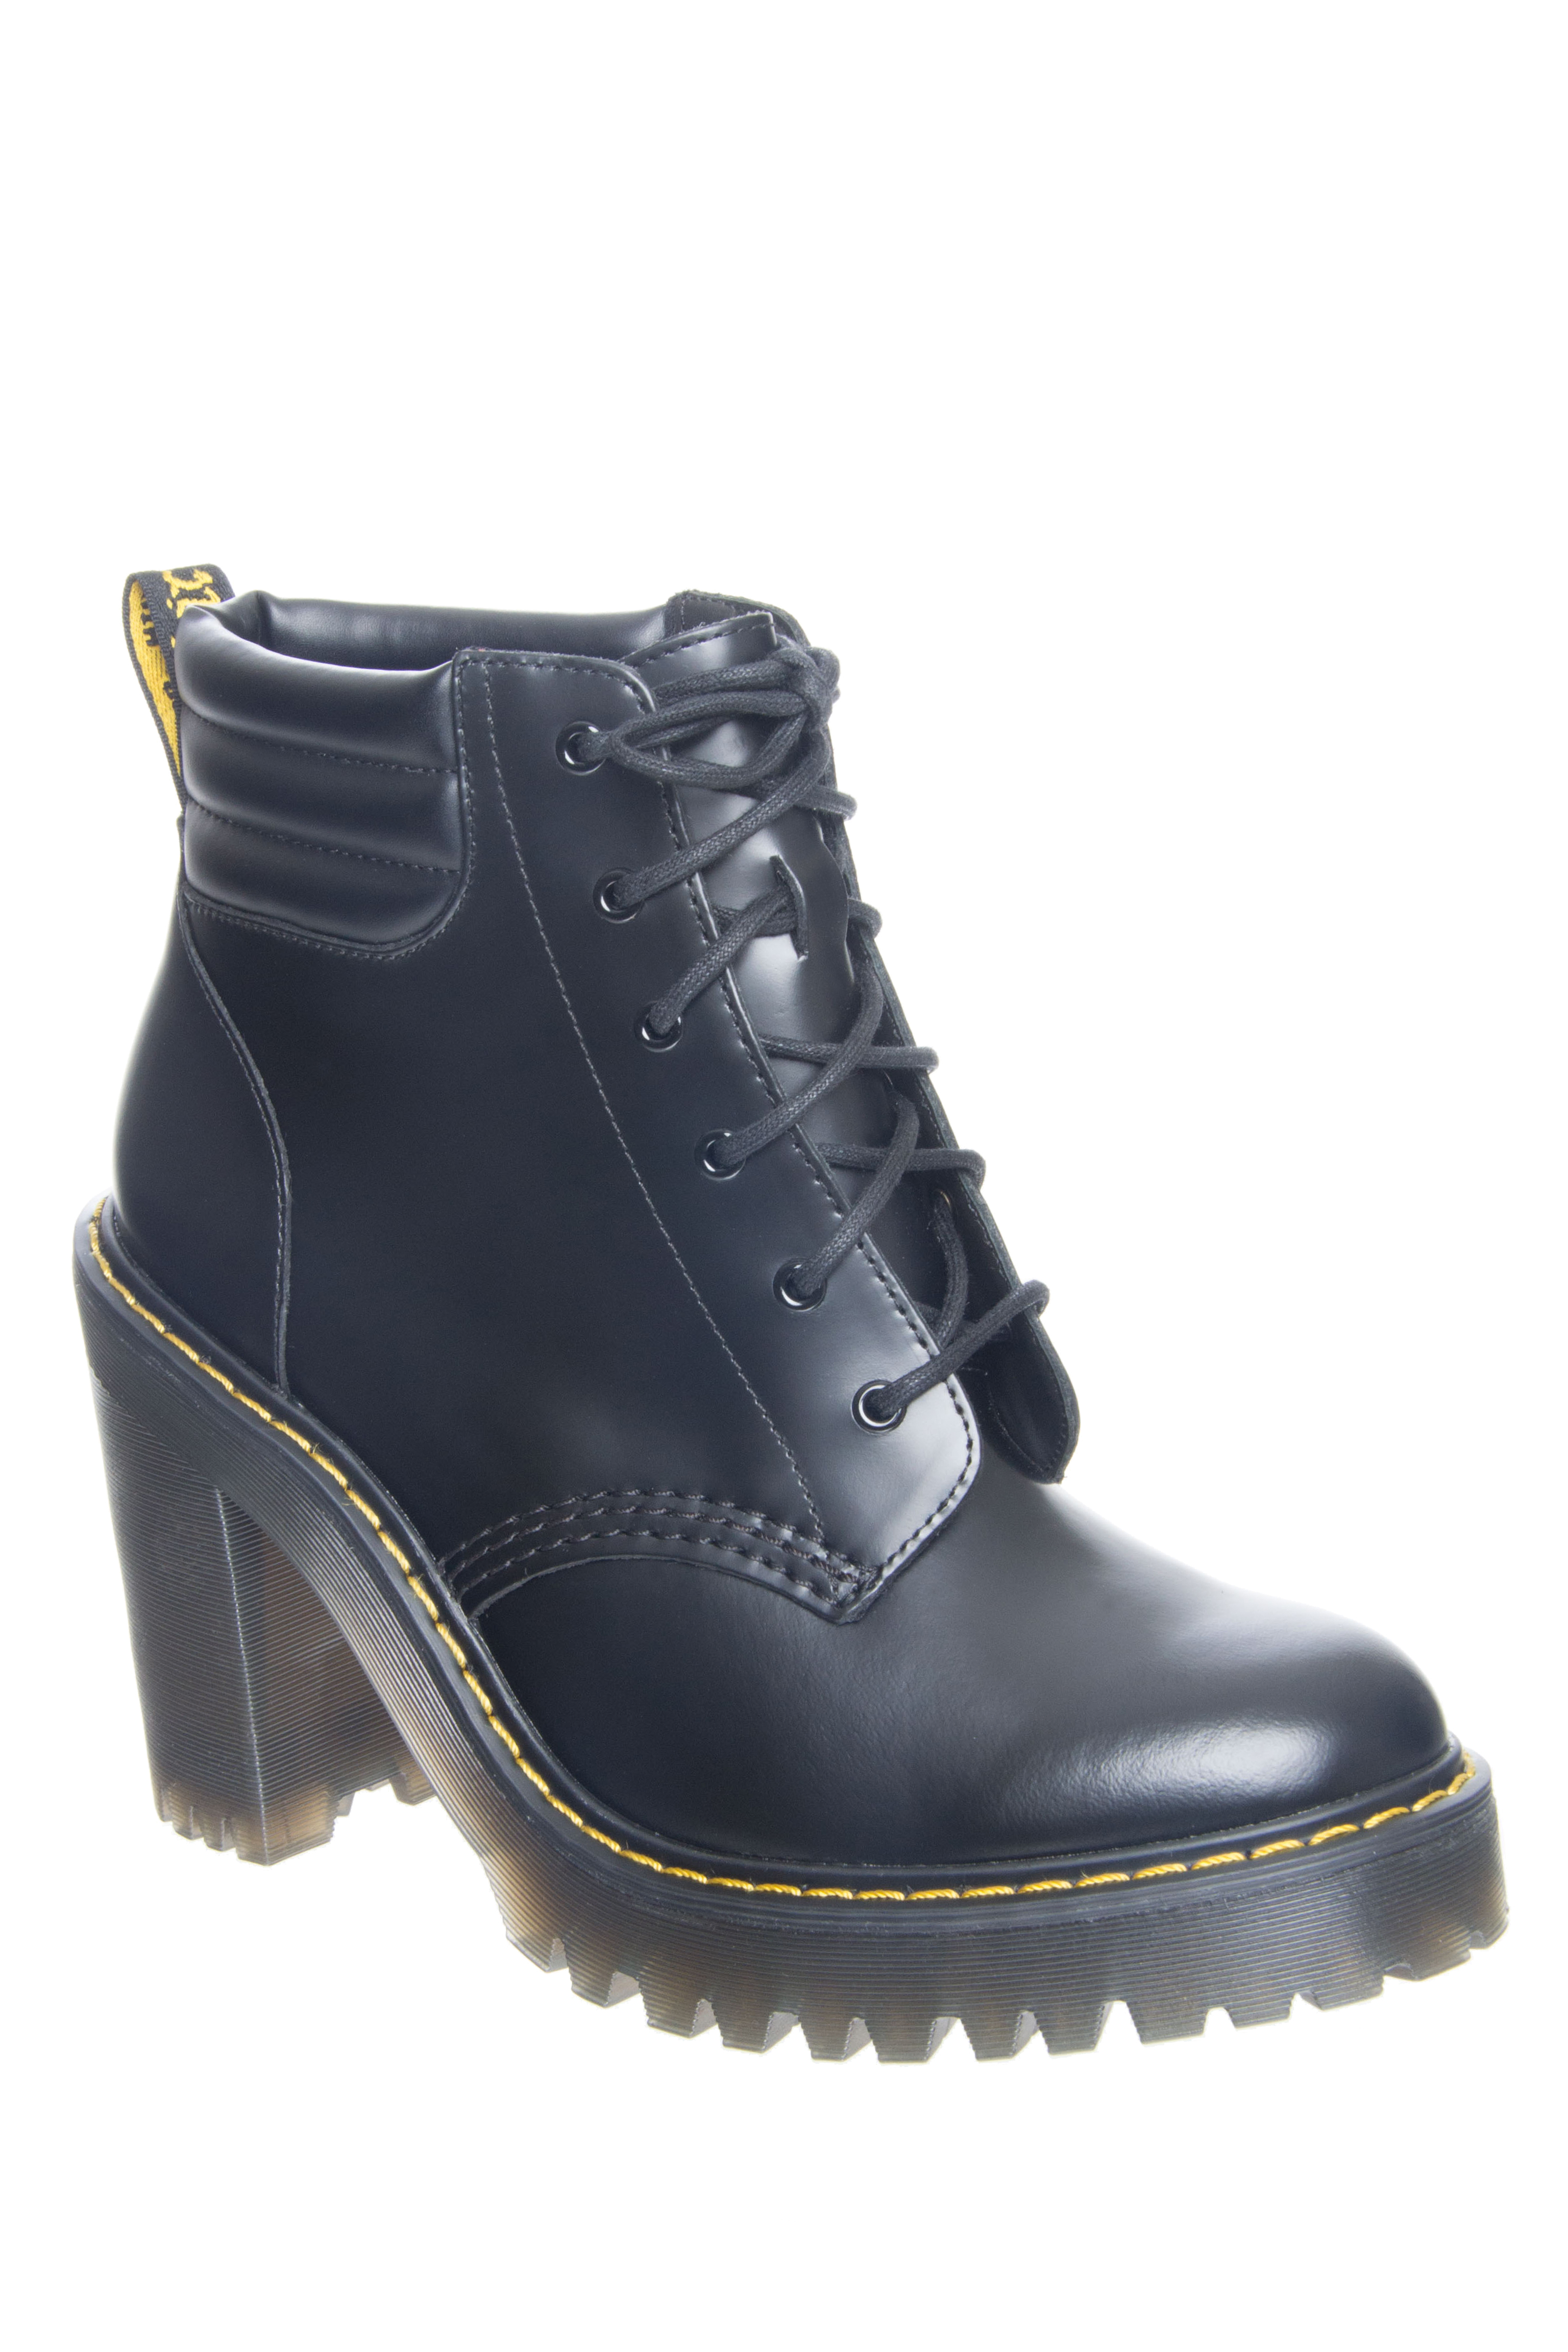 Dr. Martens Perseophone High Heel Booties - Black